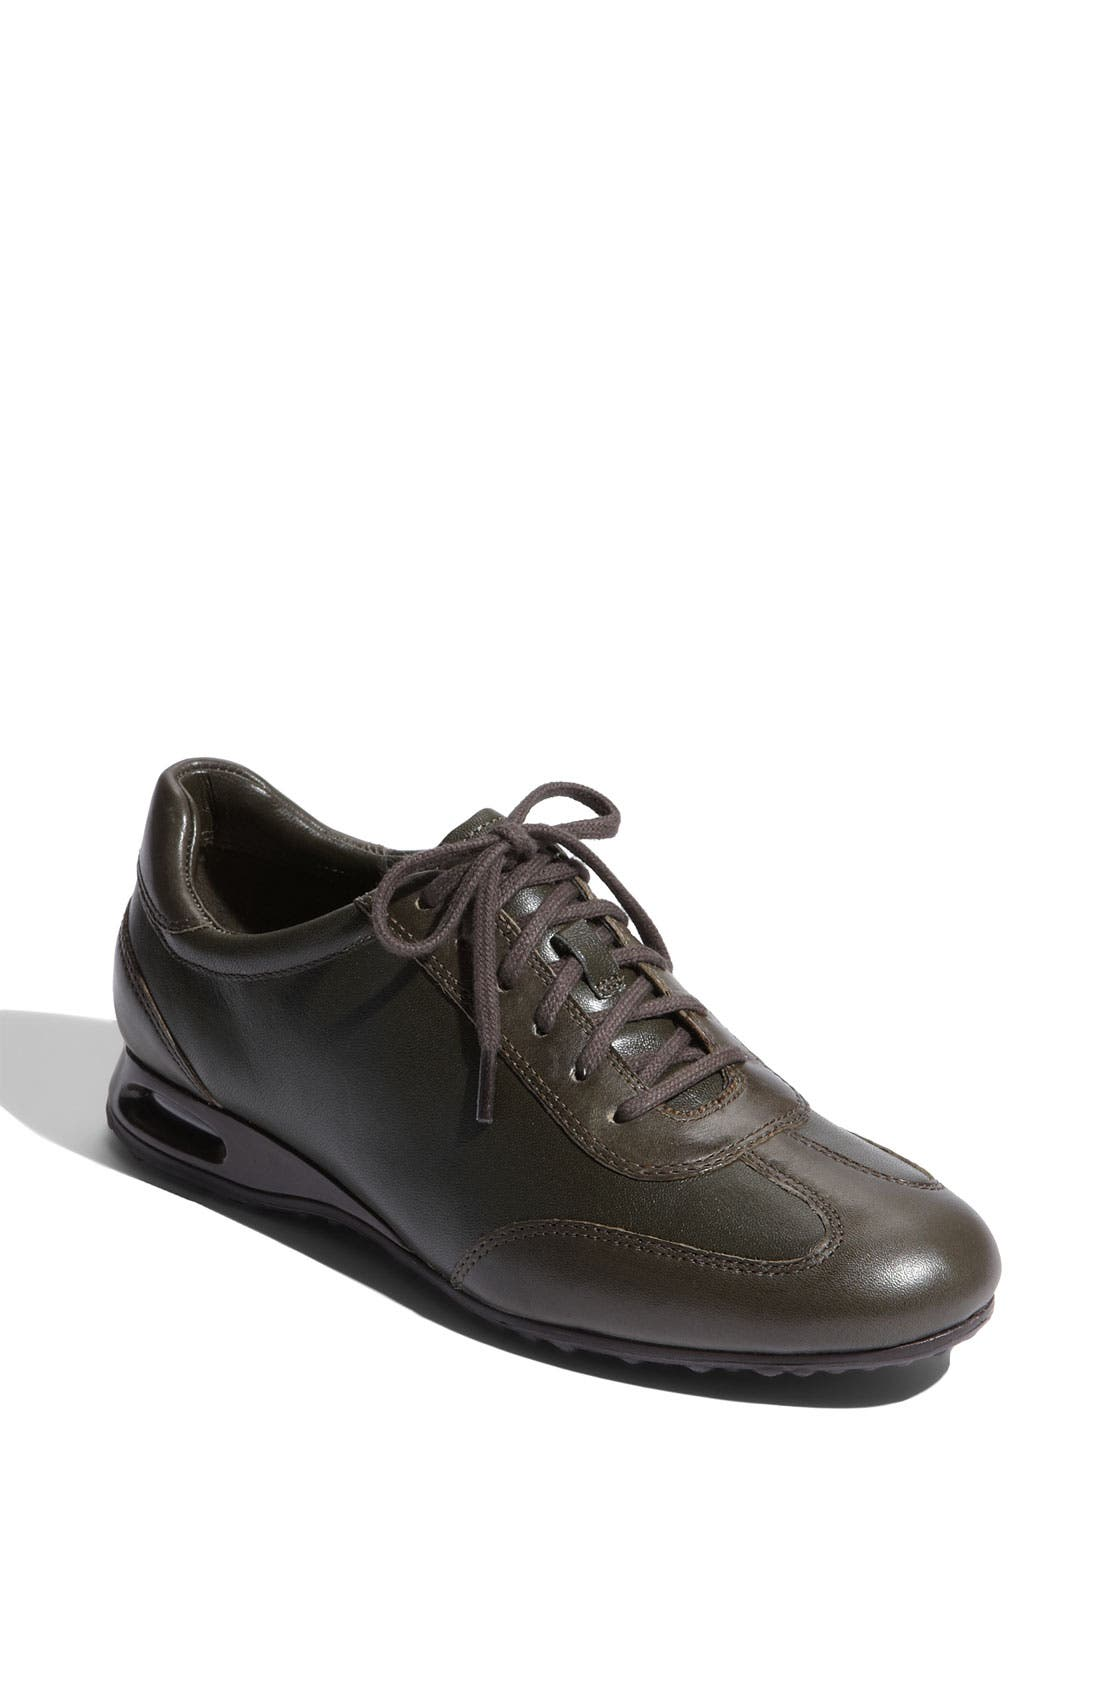 Alternate Image 1 Selected - Cole Haan 'Air Bria' Leather Oxford